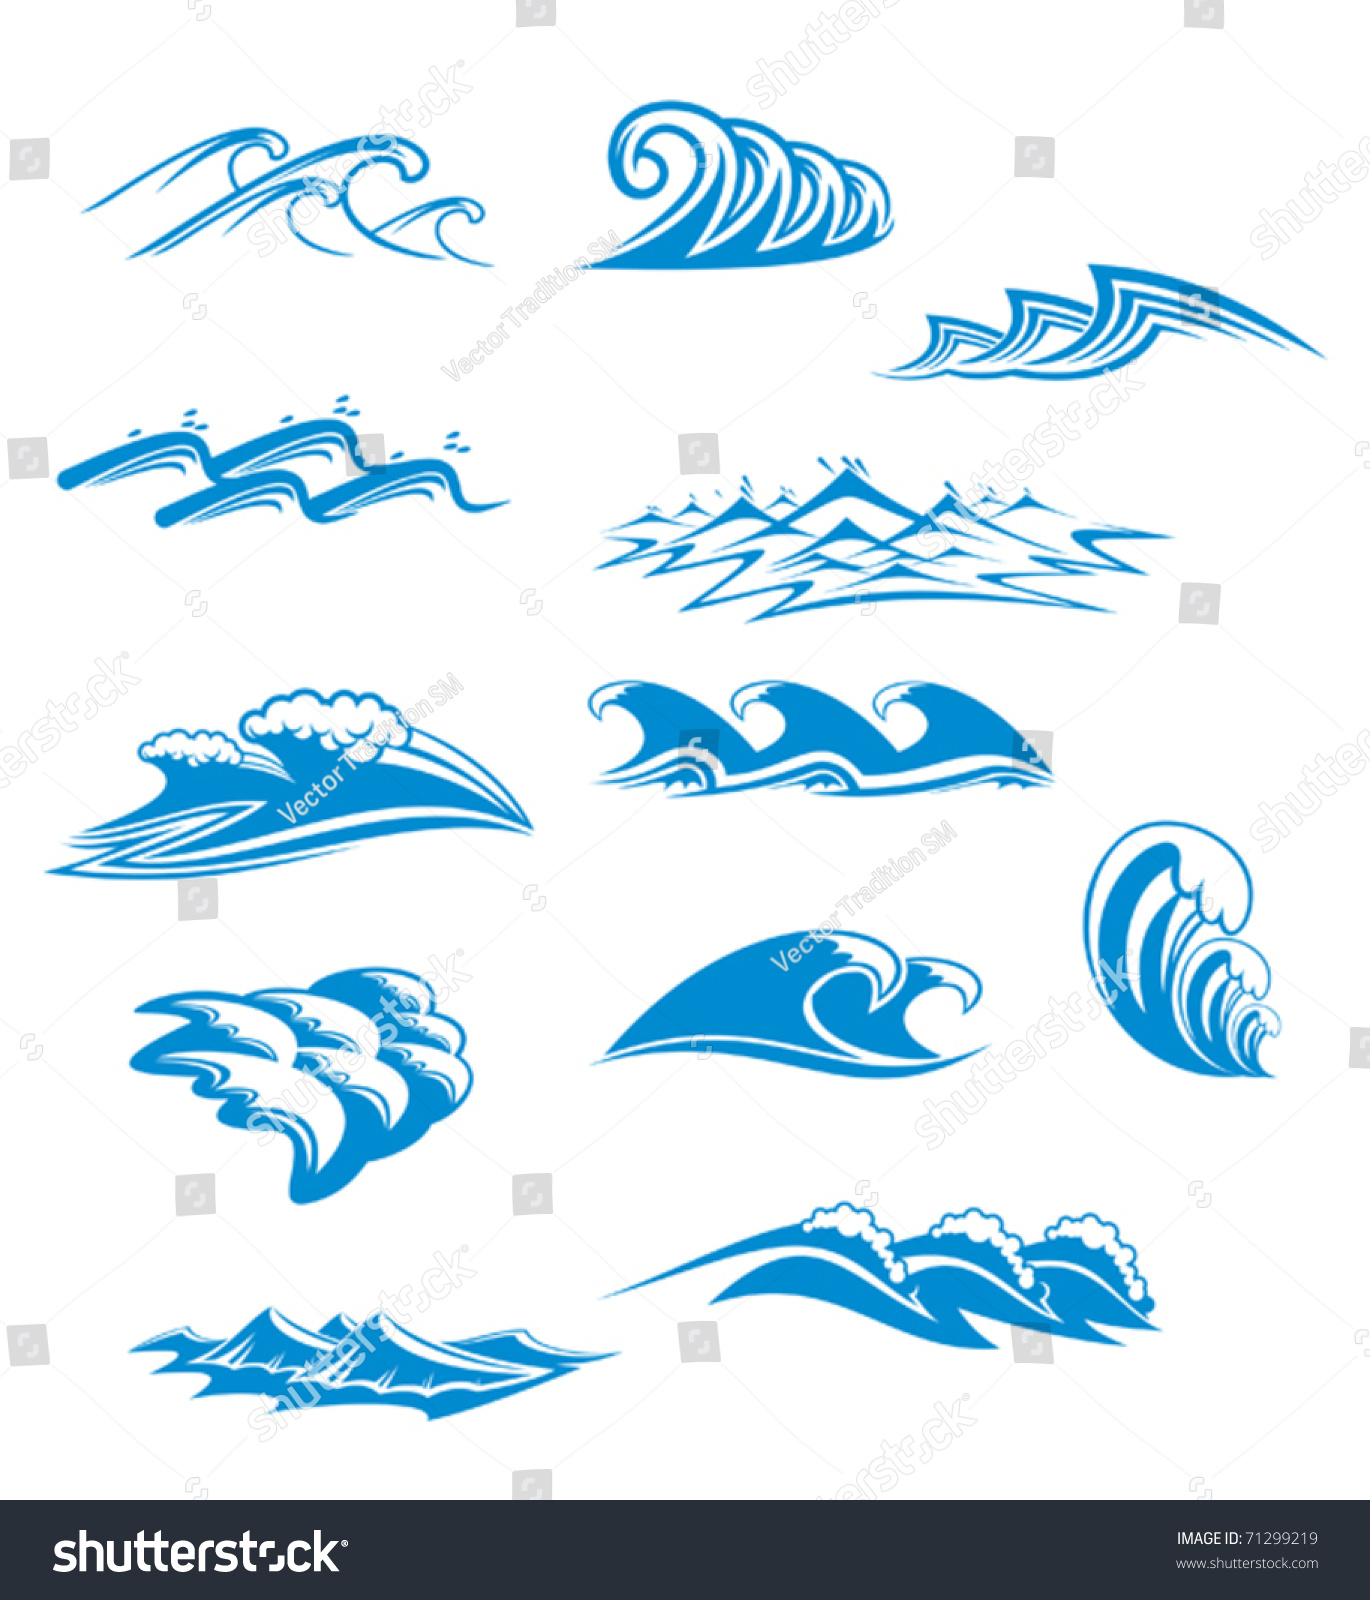 Collection wave icons blue curling cresting stock vector for Different design